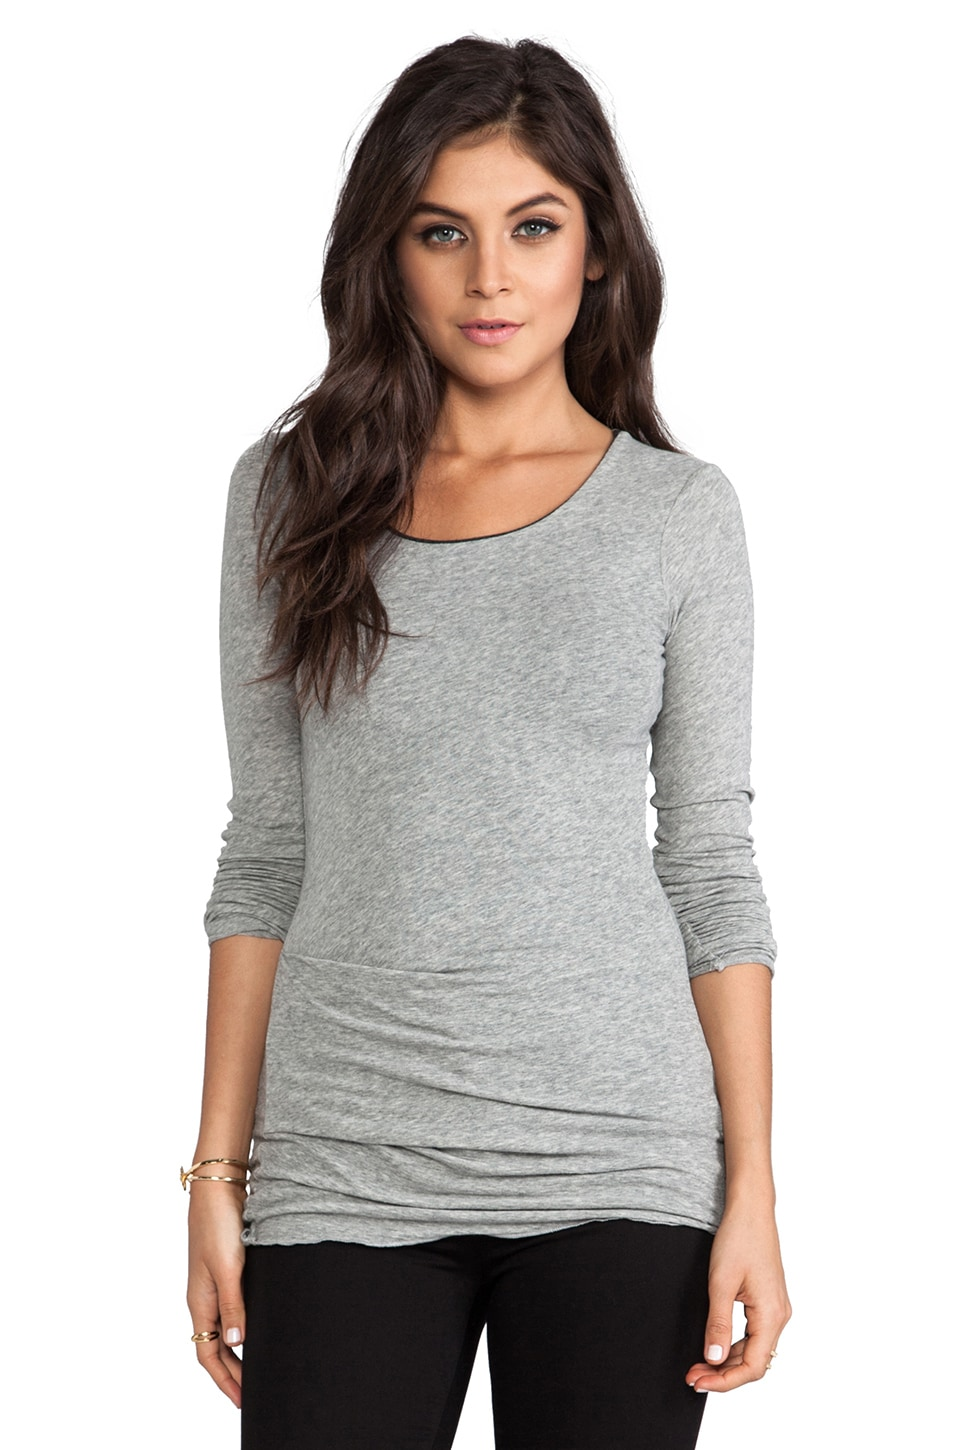 James Perse Jersey Long Sleeve Tuck Crew in Heather Grey & Charcoal